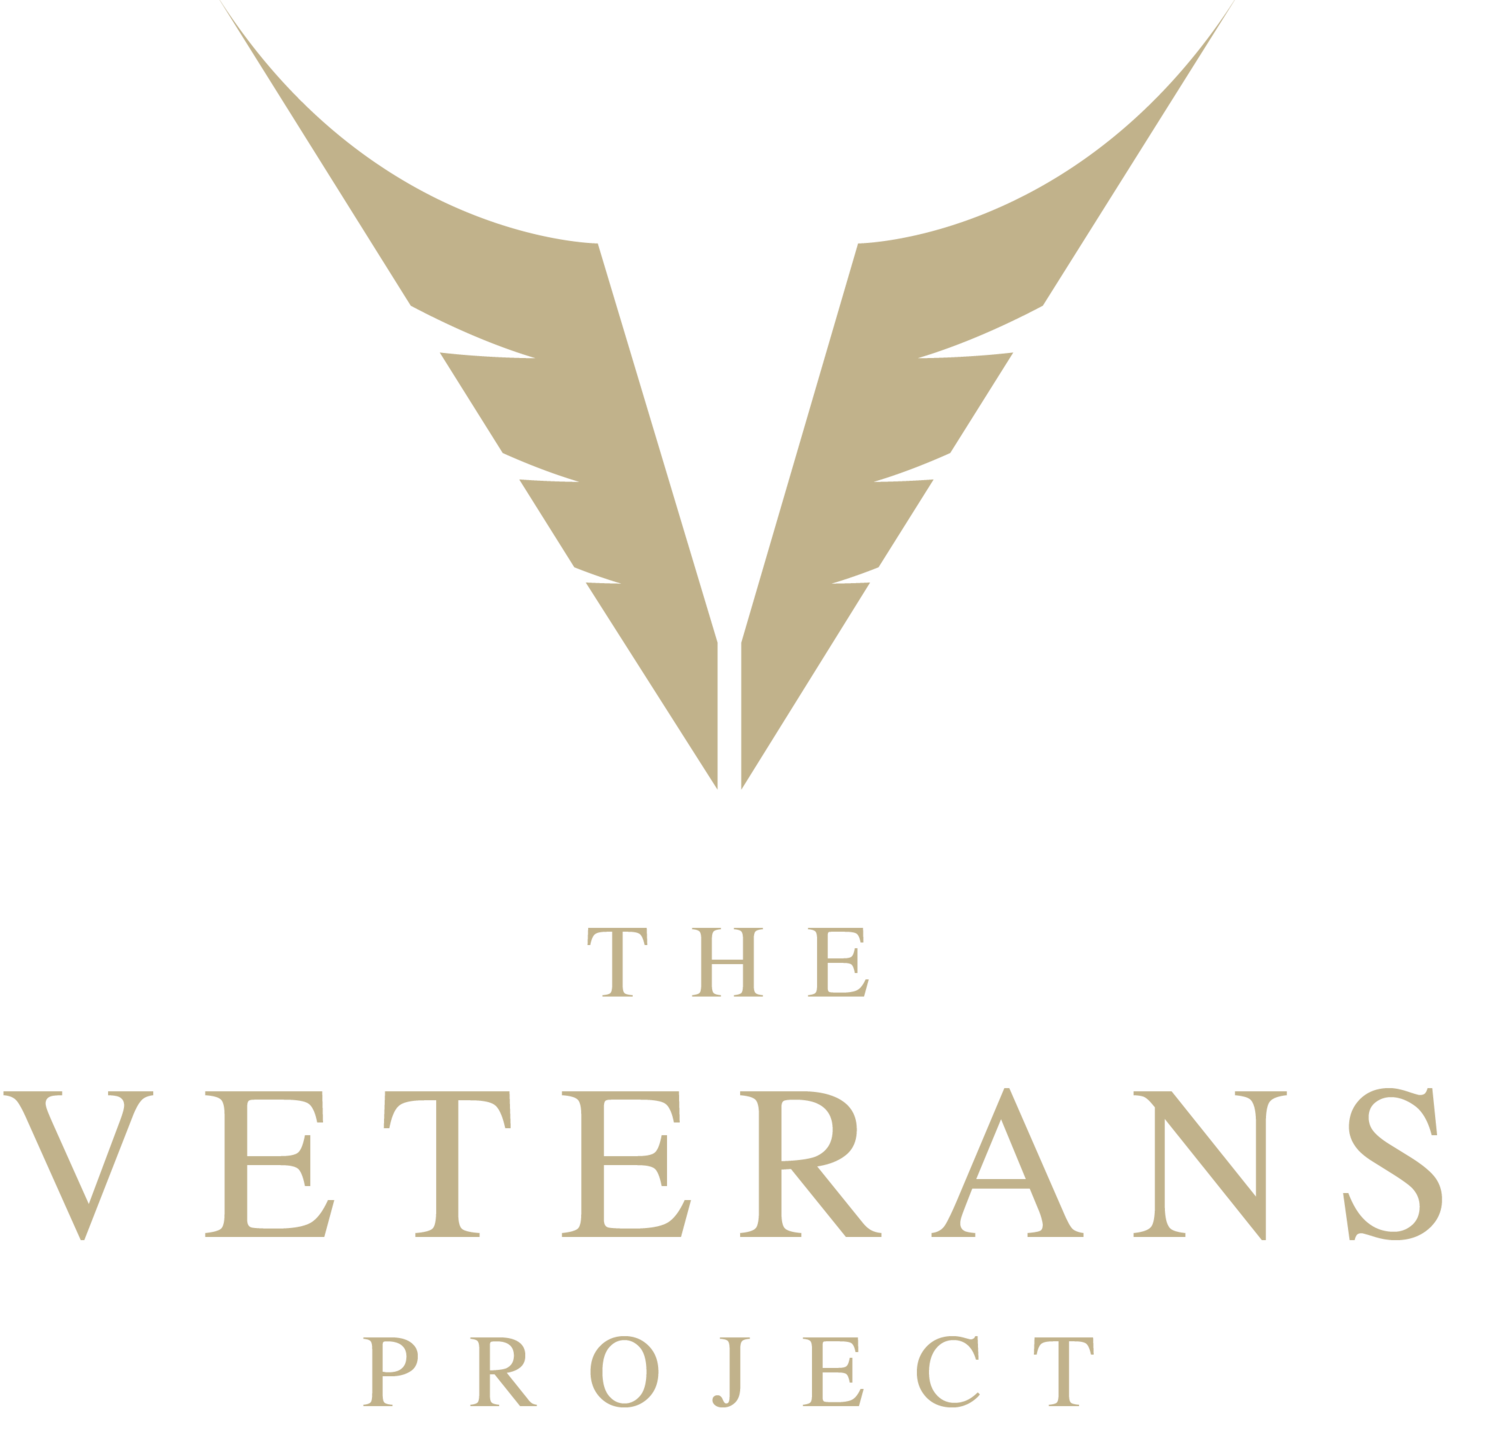 The Veterans Project